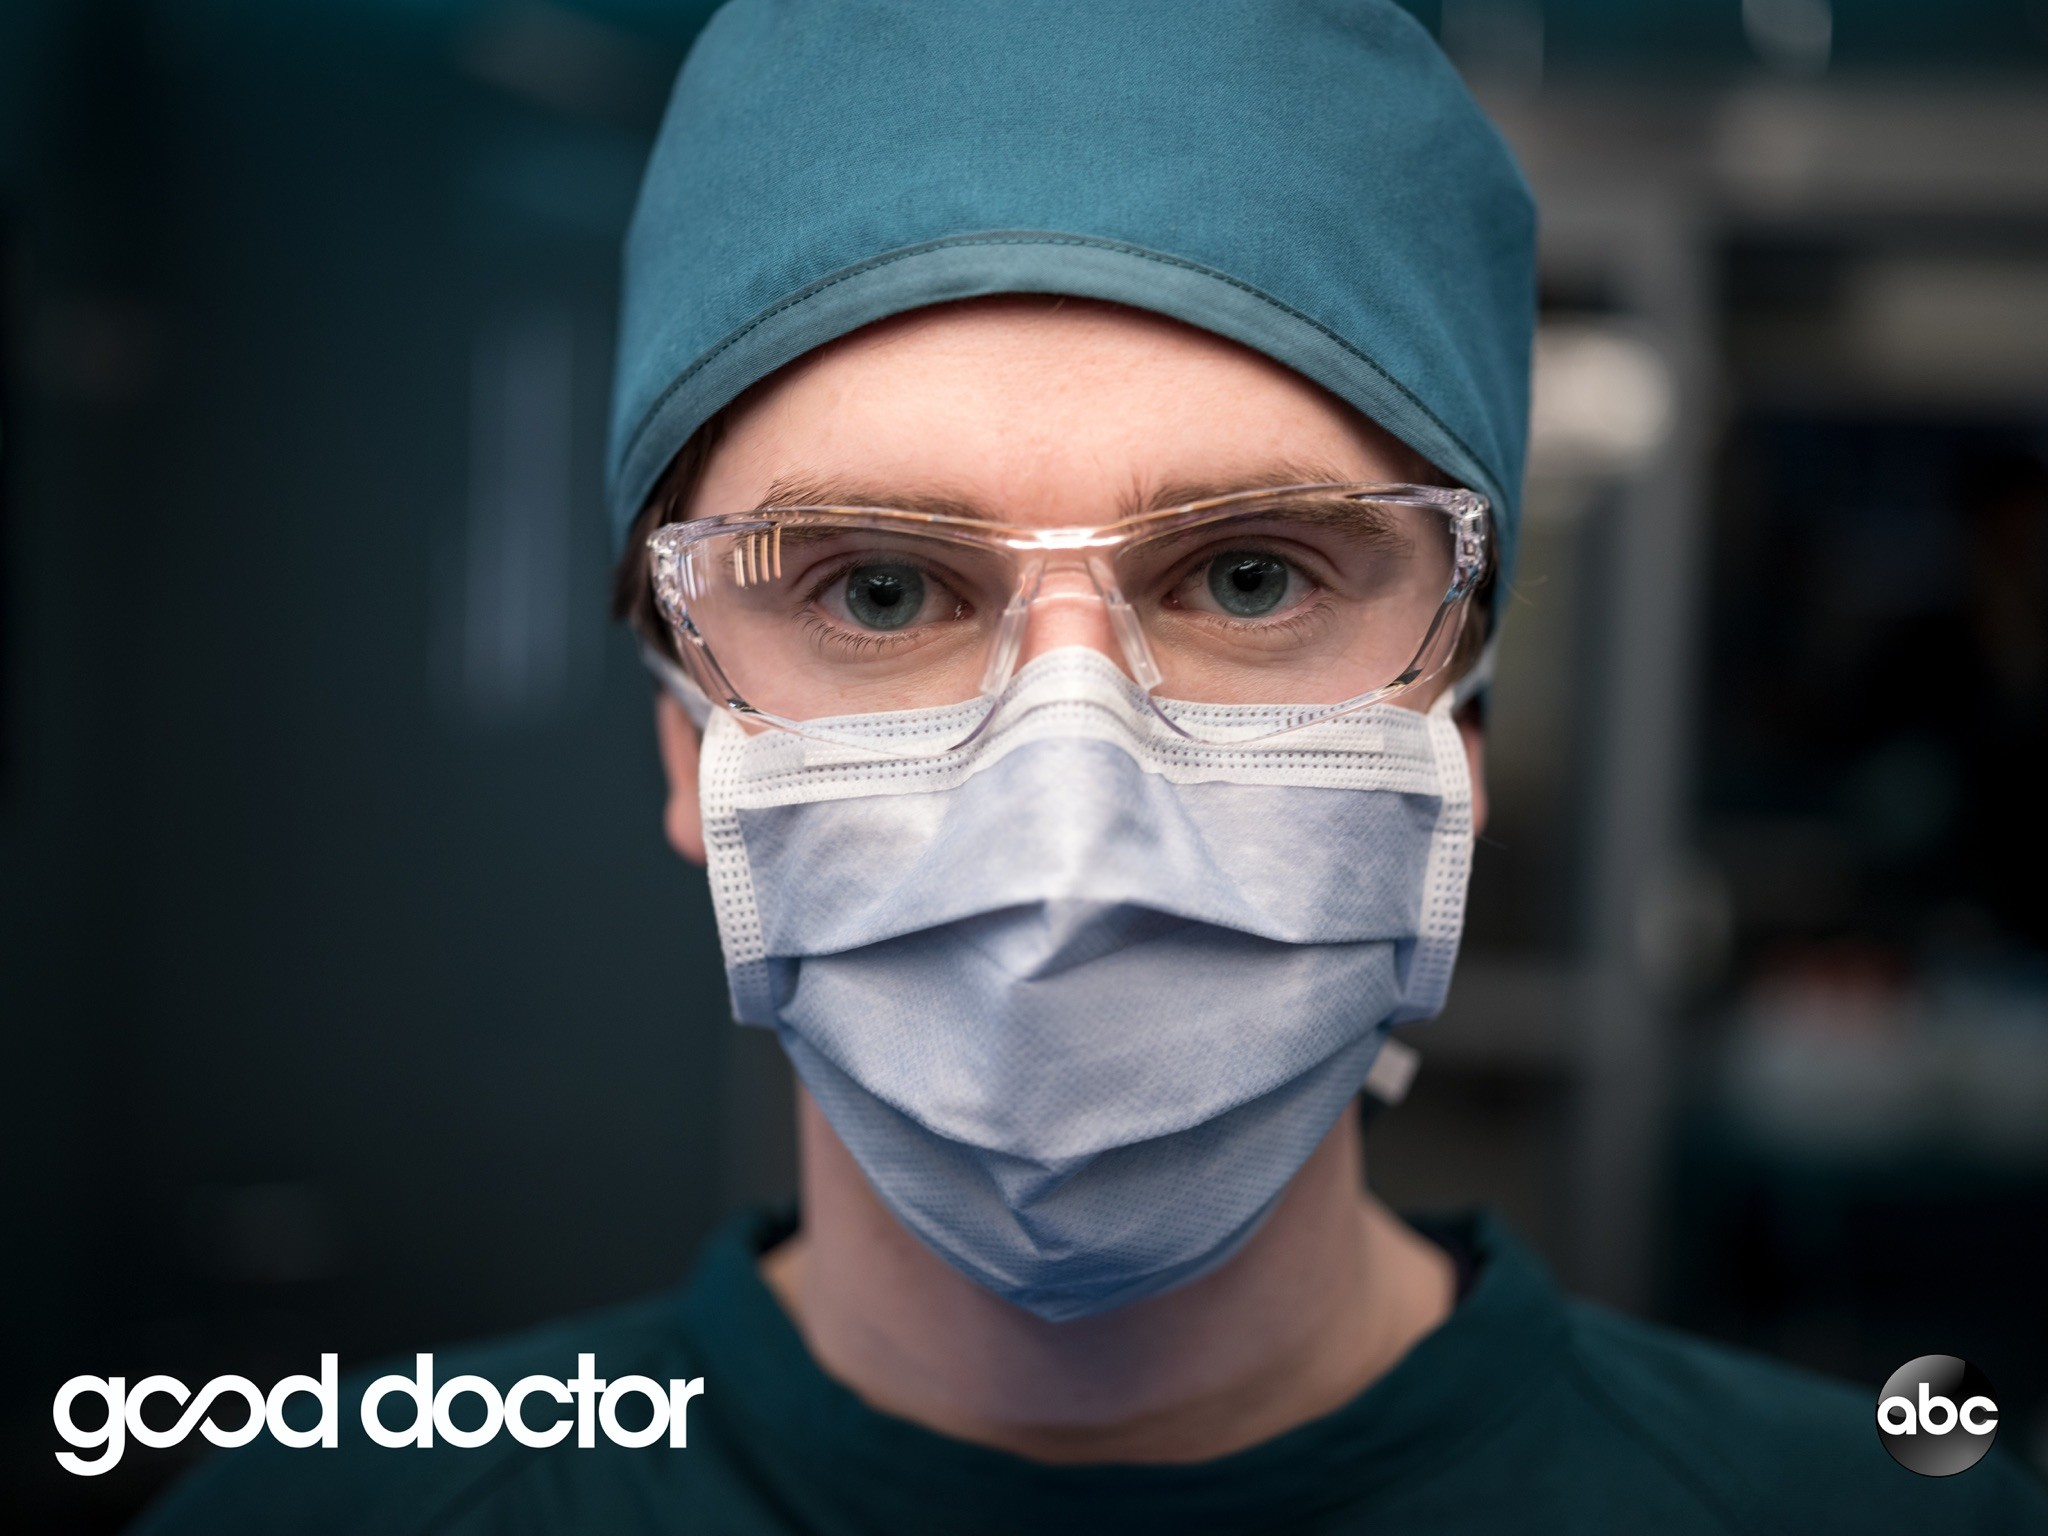 2048x1536 The Good Doctor Wallpaper HD 20 - 2048 X 1536